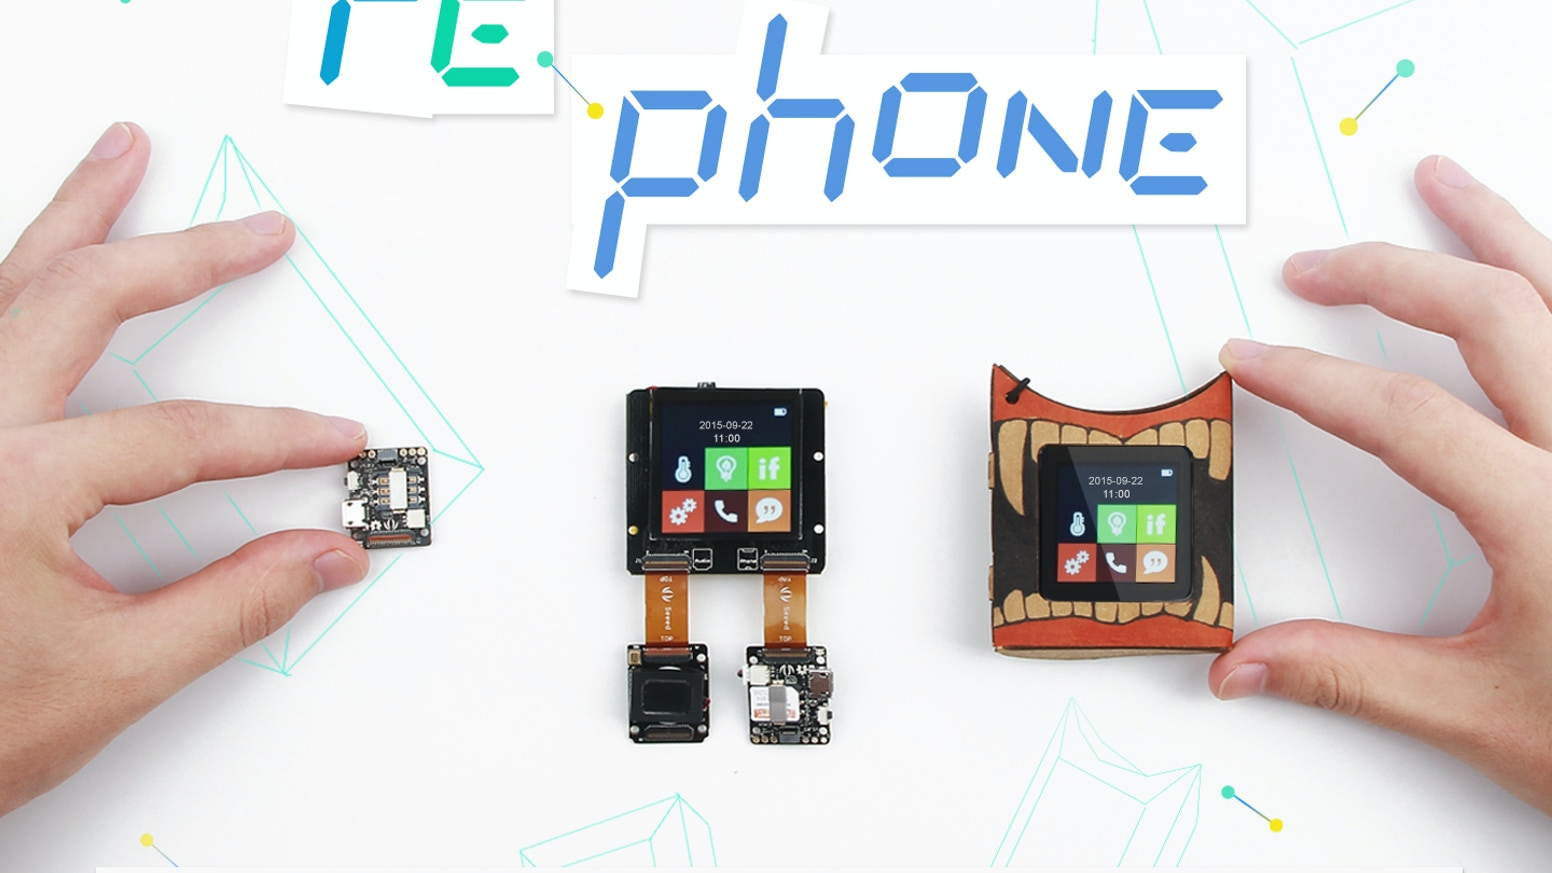 Create a phone yourself in minutes and hack a new way to communicate with things.